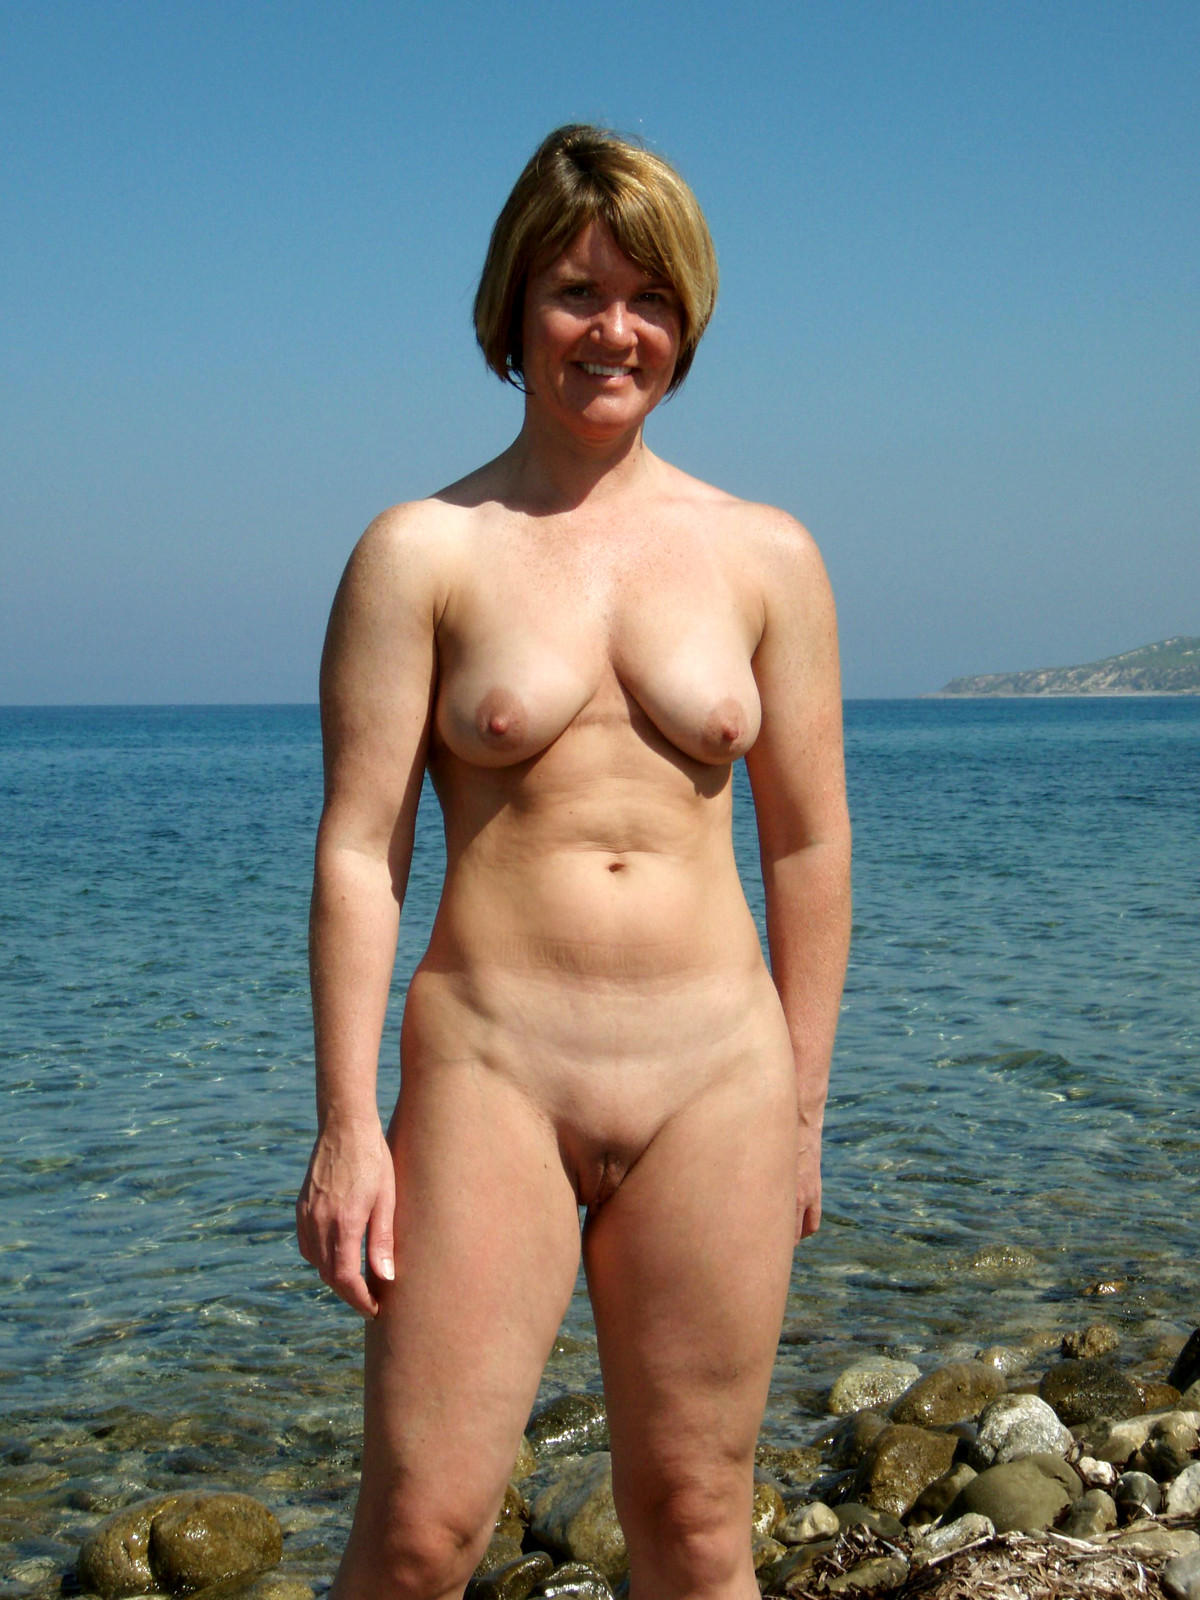 Are not Sexy nudist family photos and